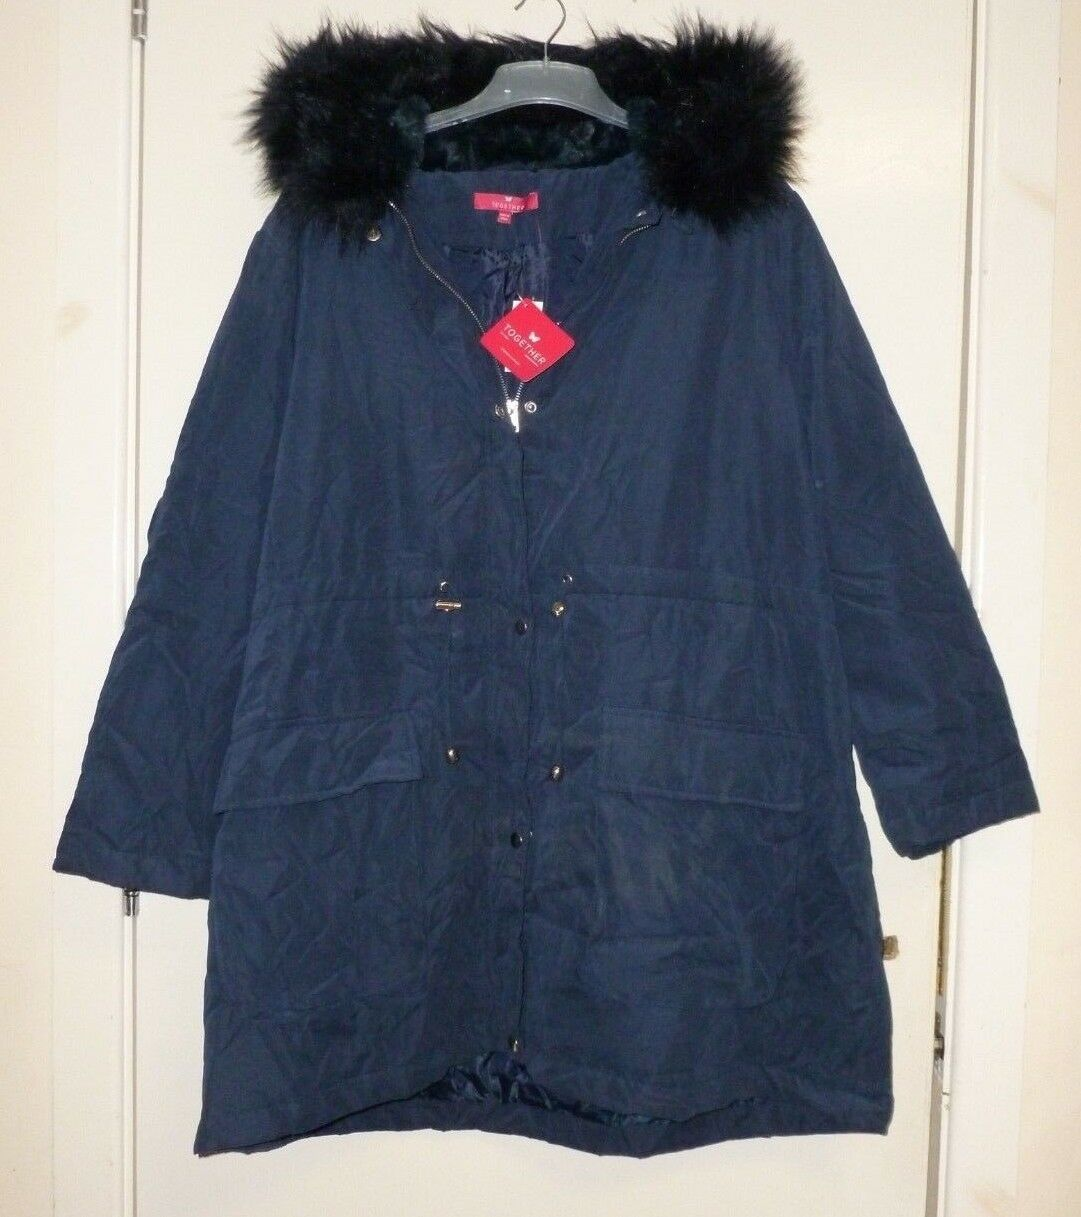 Together Parka bluee with fur edged hood SIZE 30 UK BRAND NEW CR181 HH 08